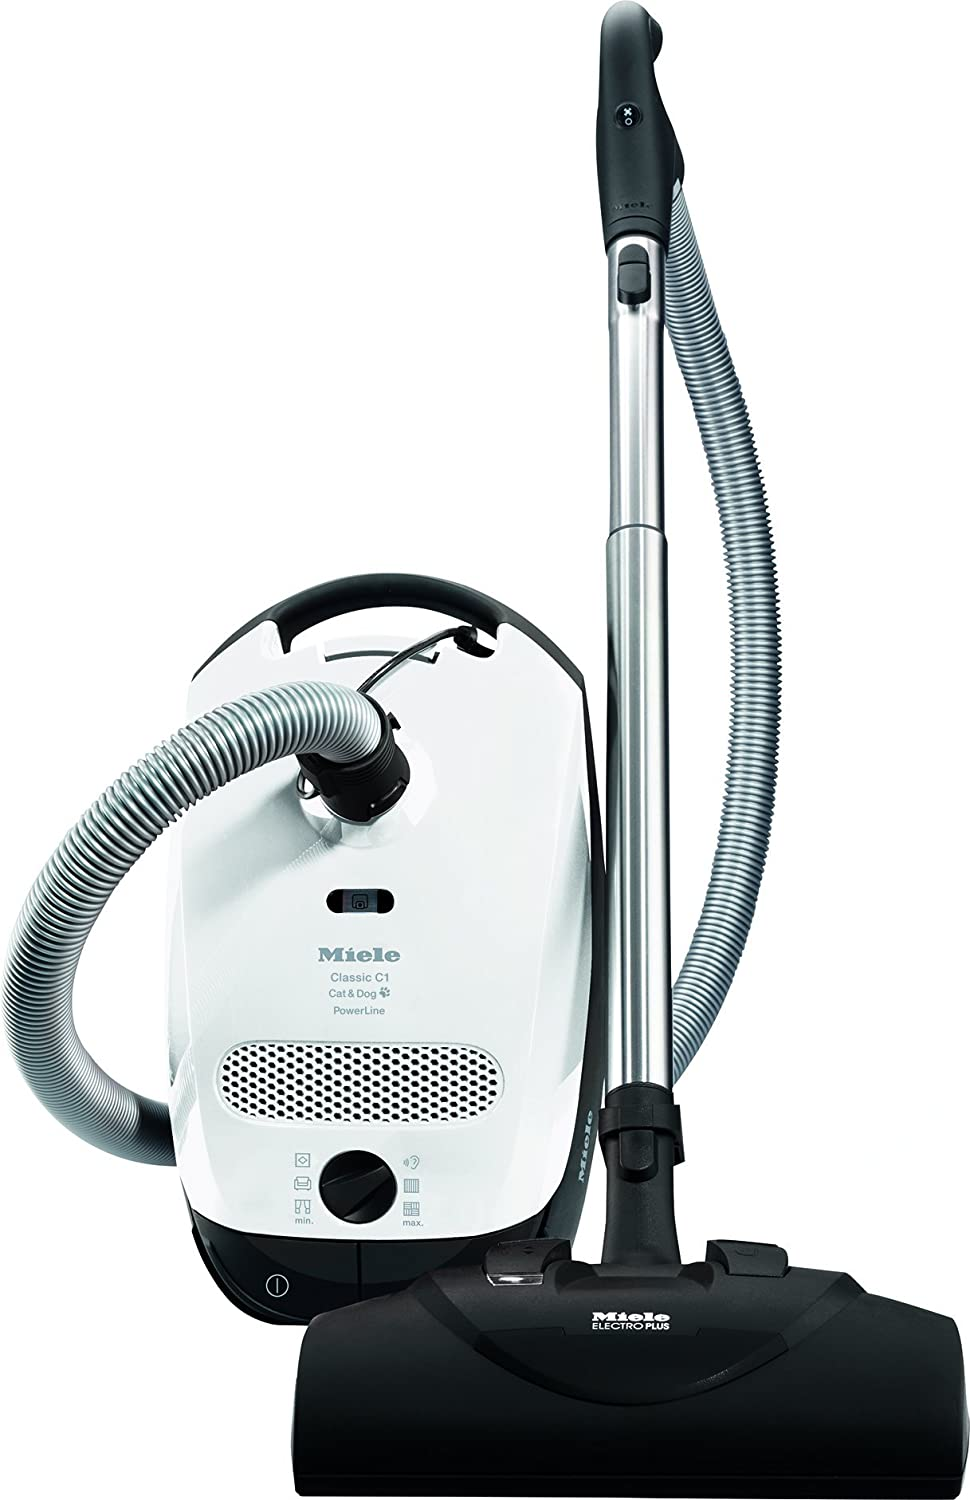 Miele Classic C1 Cat & Dog Canister Vacuum Cleaner Review